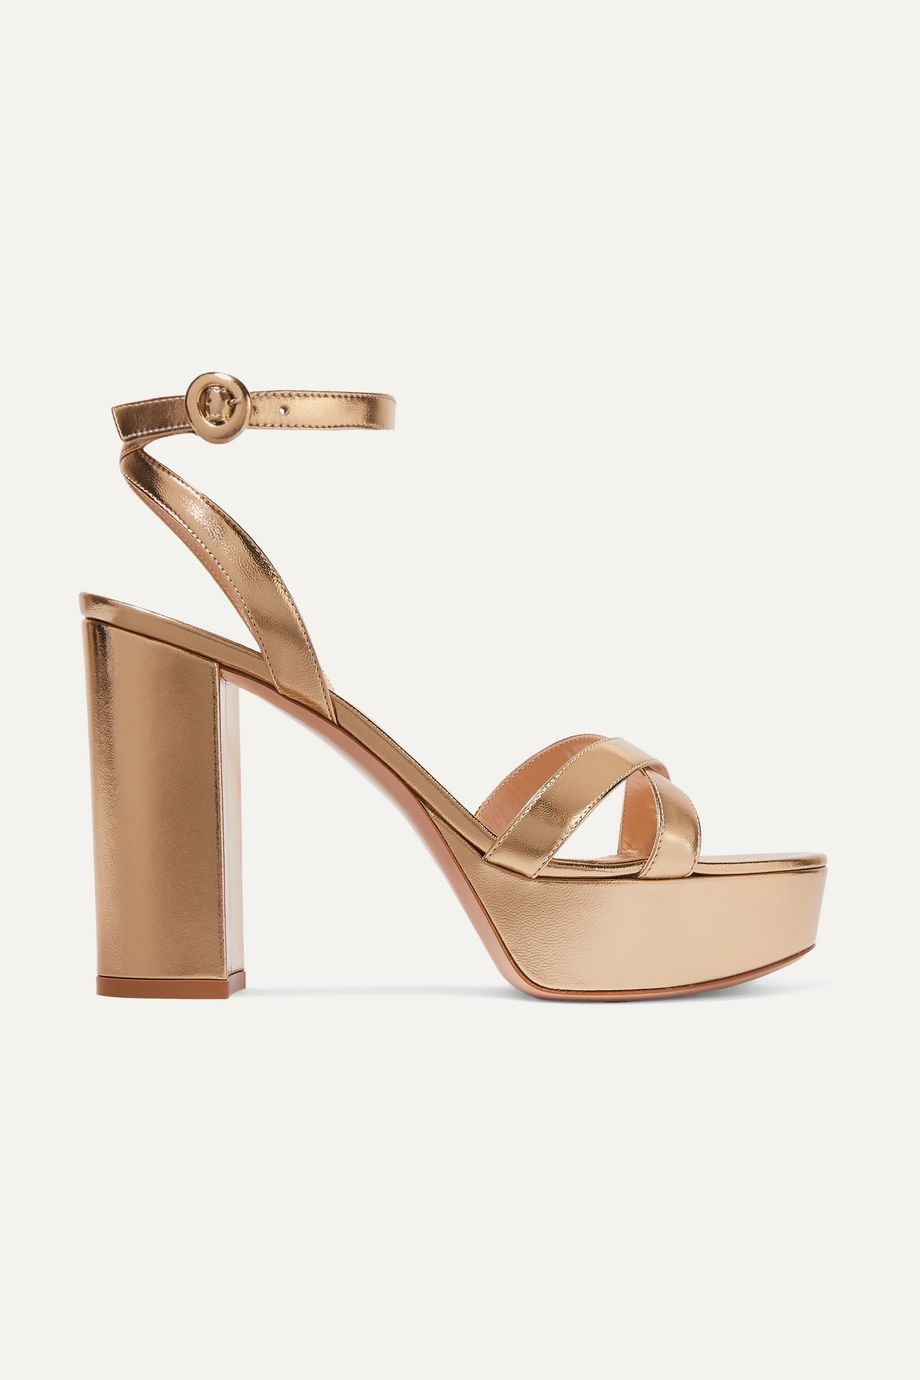 Gianvito Rossi Poppy 120 metallic leather platform sandals